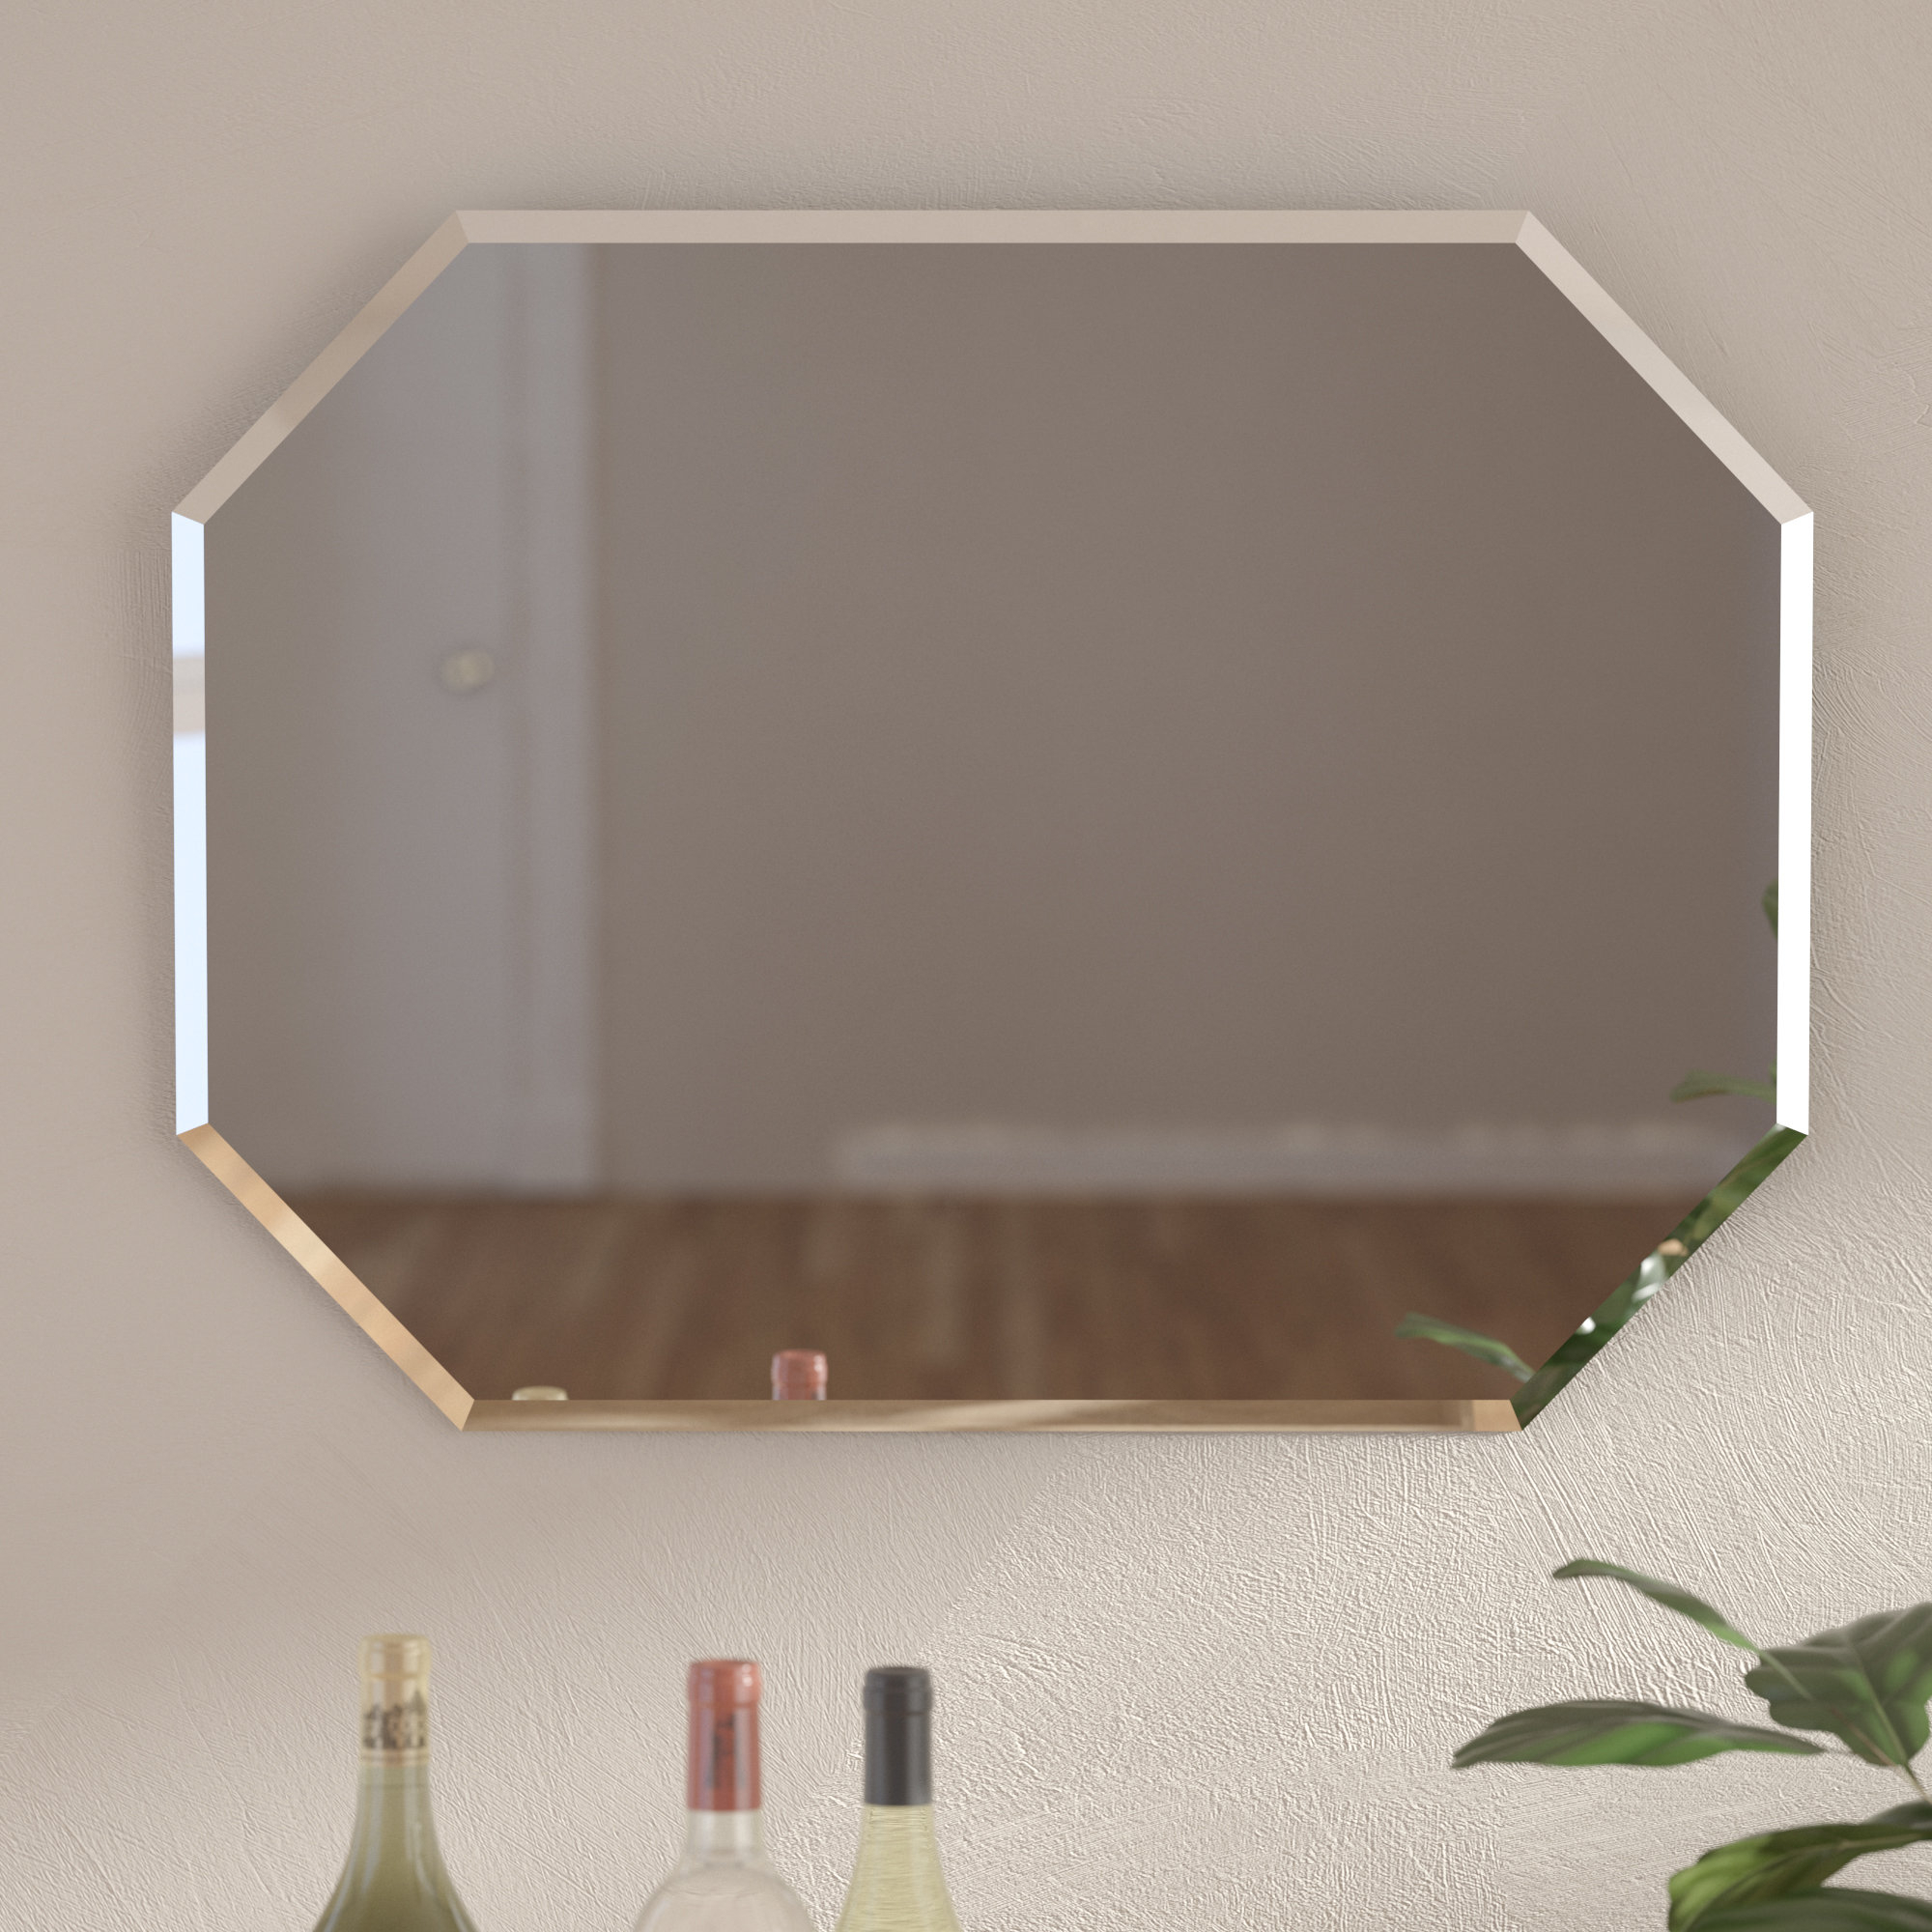 Widely Used Cannonball Creek Frameless Beveled Wall Mirror Pertaining To Tetbury Frameless Tri Bevel Wall Mirrors (Gallery 14 of 20)